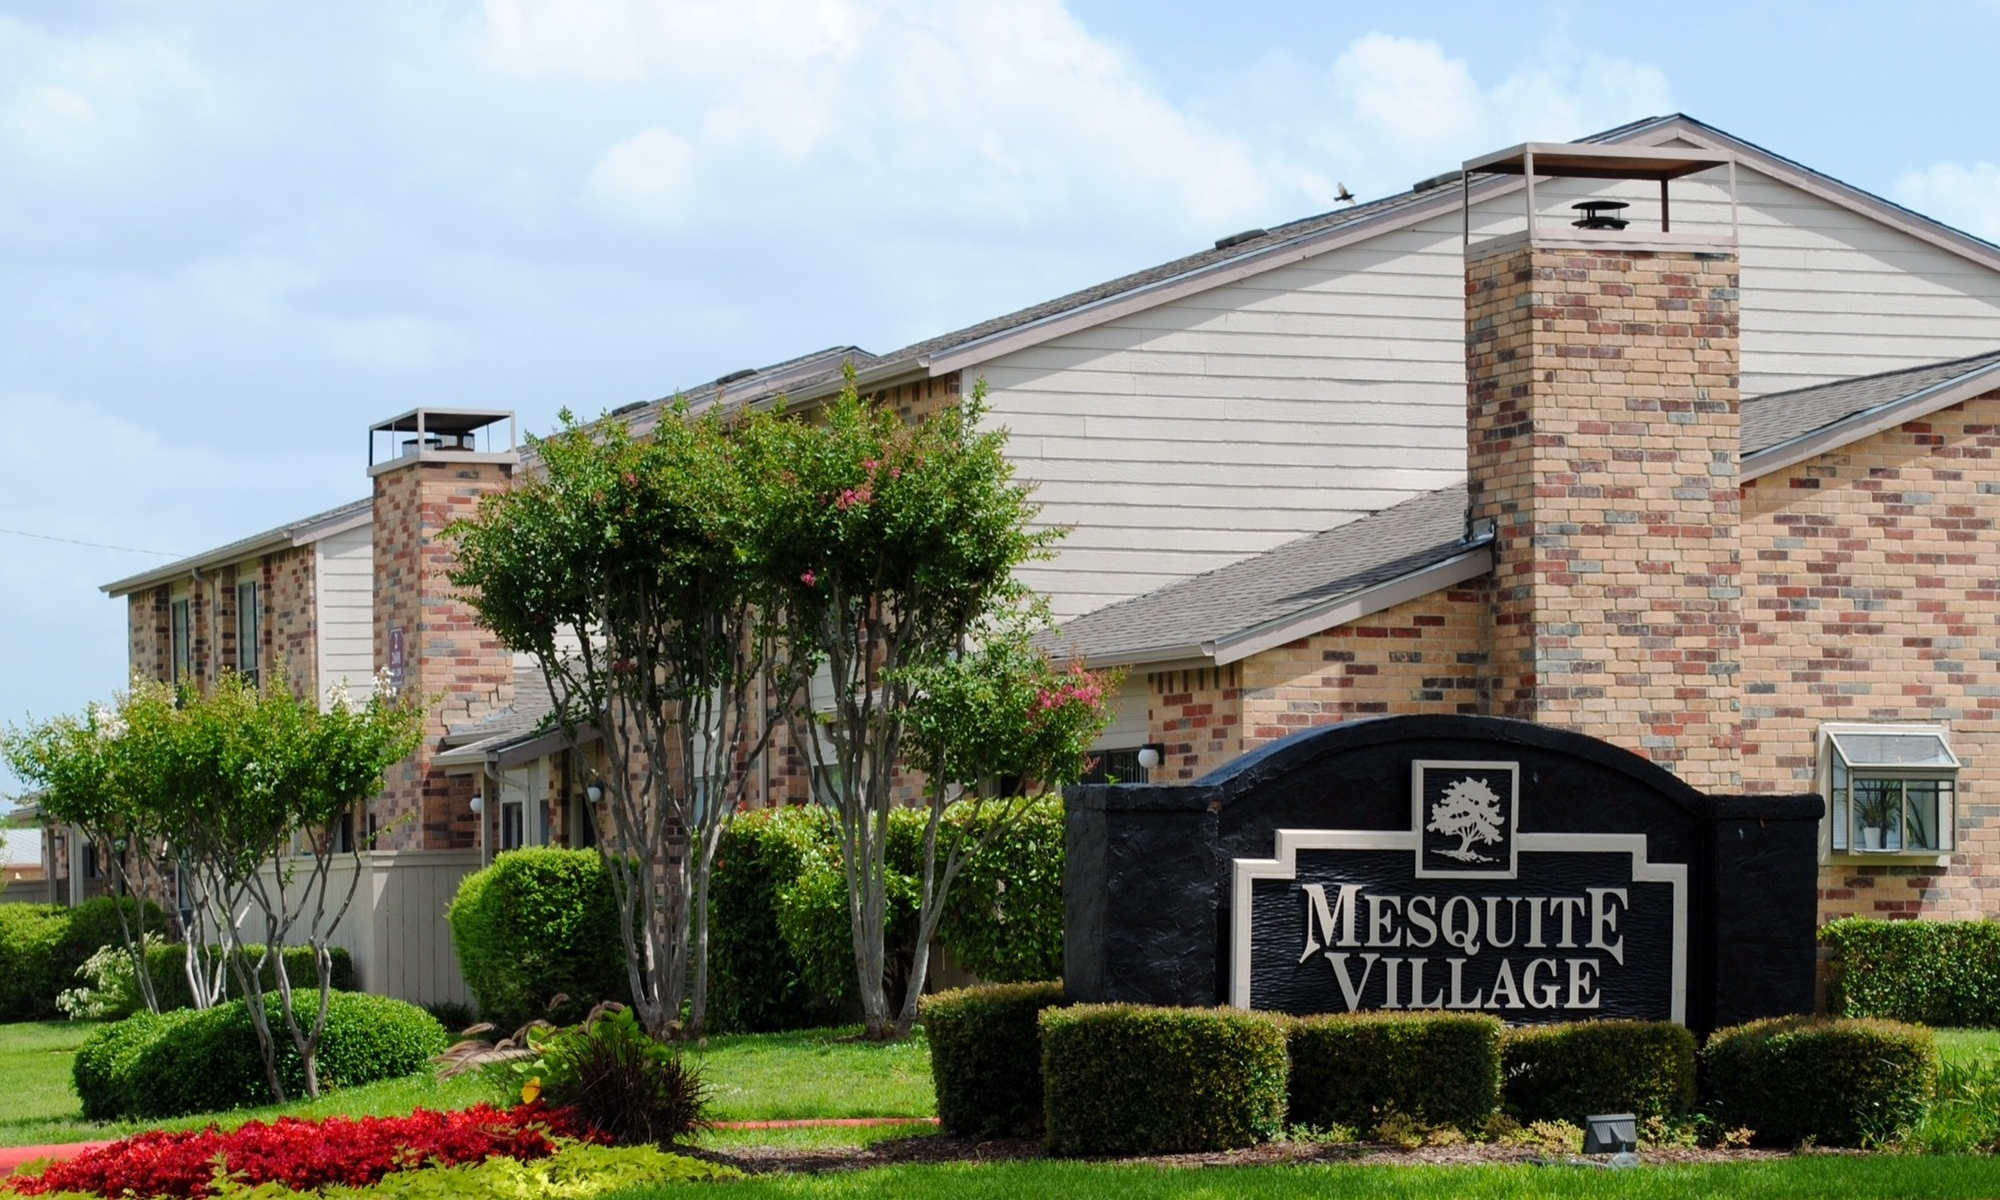 dr mesquite tx apartments for rent mesquite village apartments